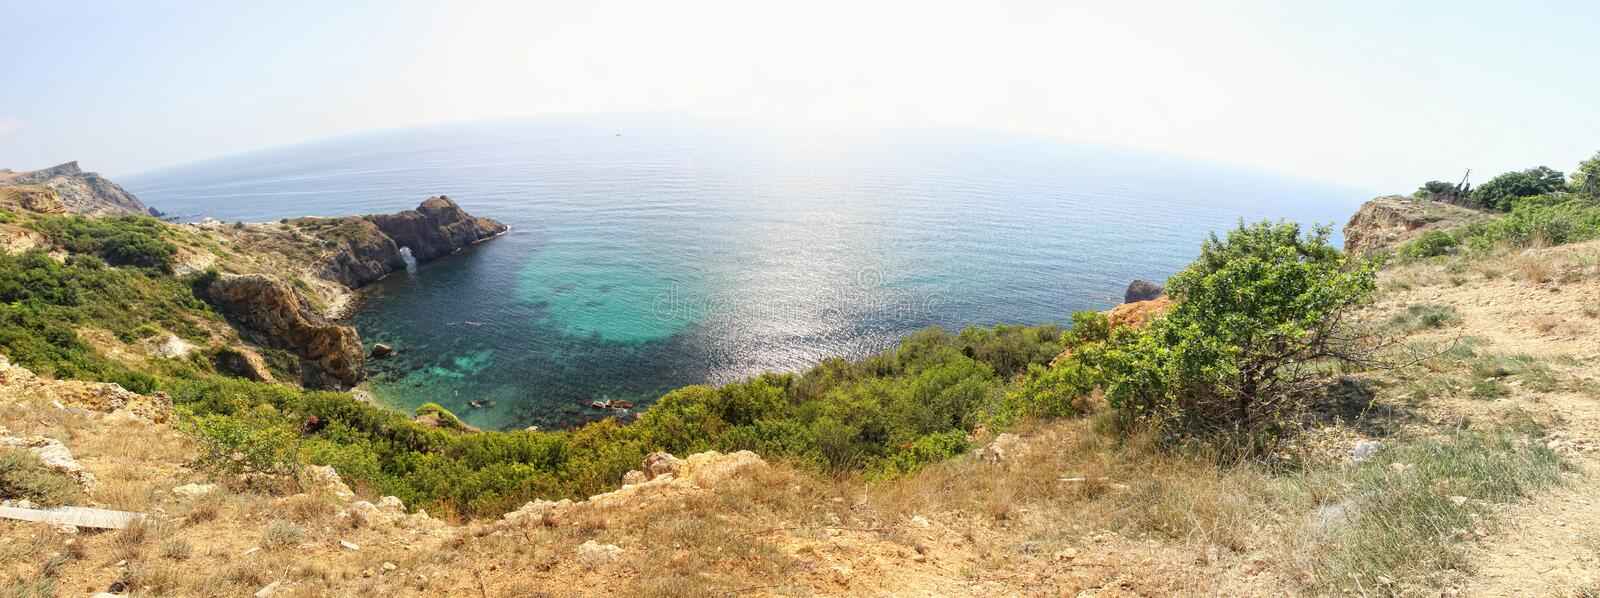 Panoramic view of seacoast near Fiolent cape, Crimea, Ukraine. Panoramic summer view of Black sea coast near Fiolent cape, Crimea peninsula, Ukraine stock images